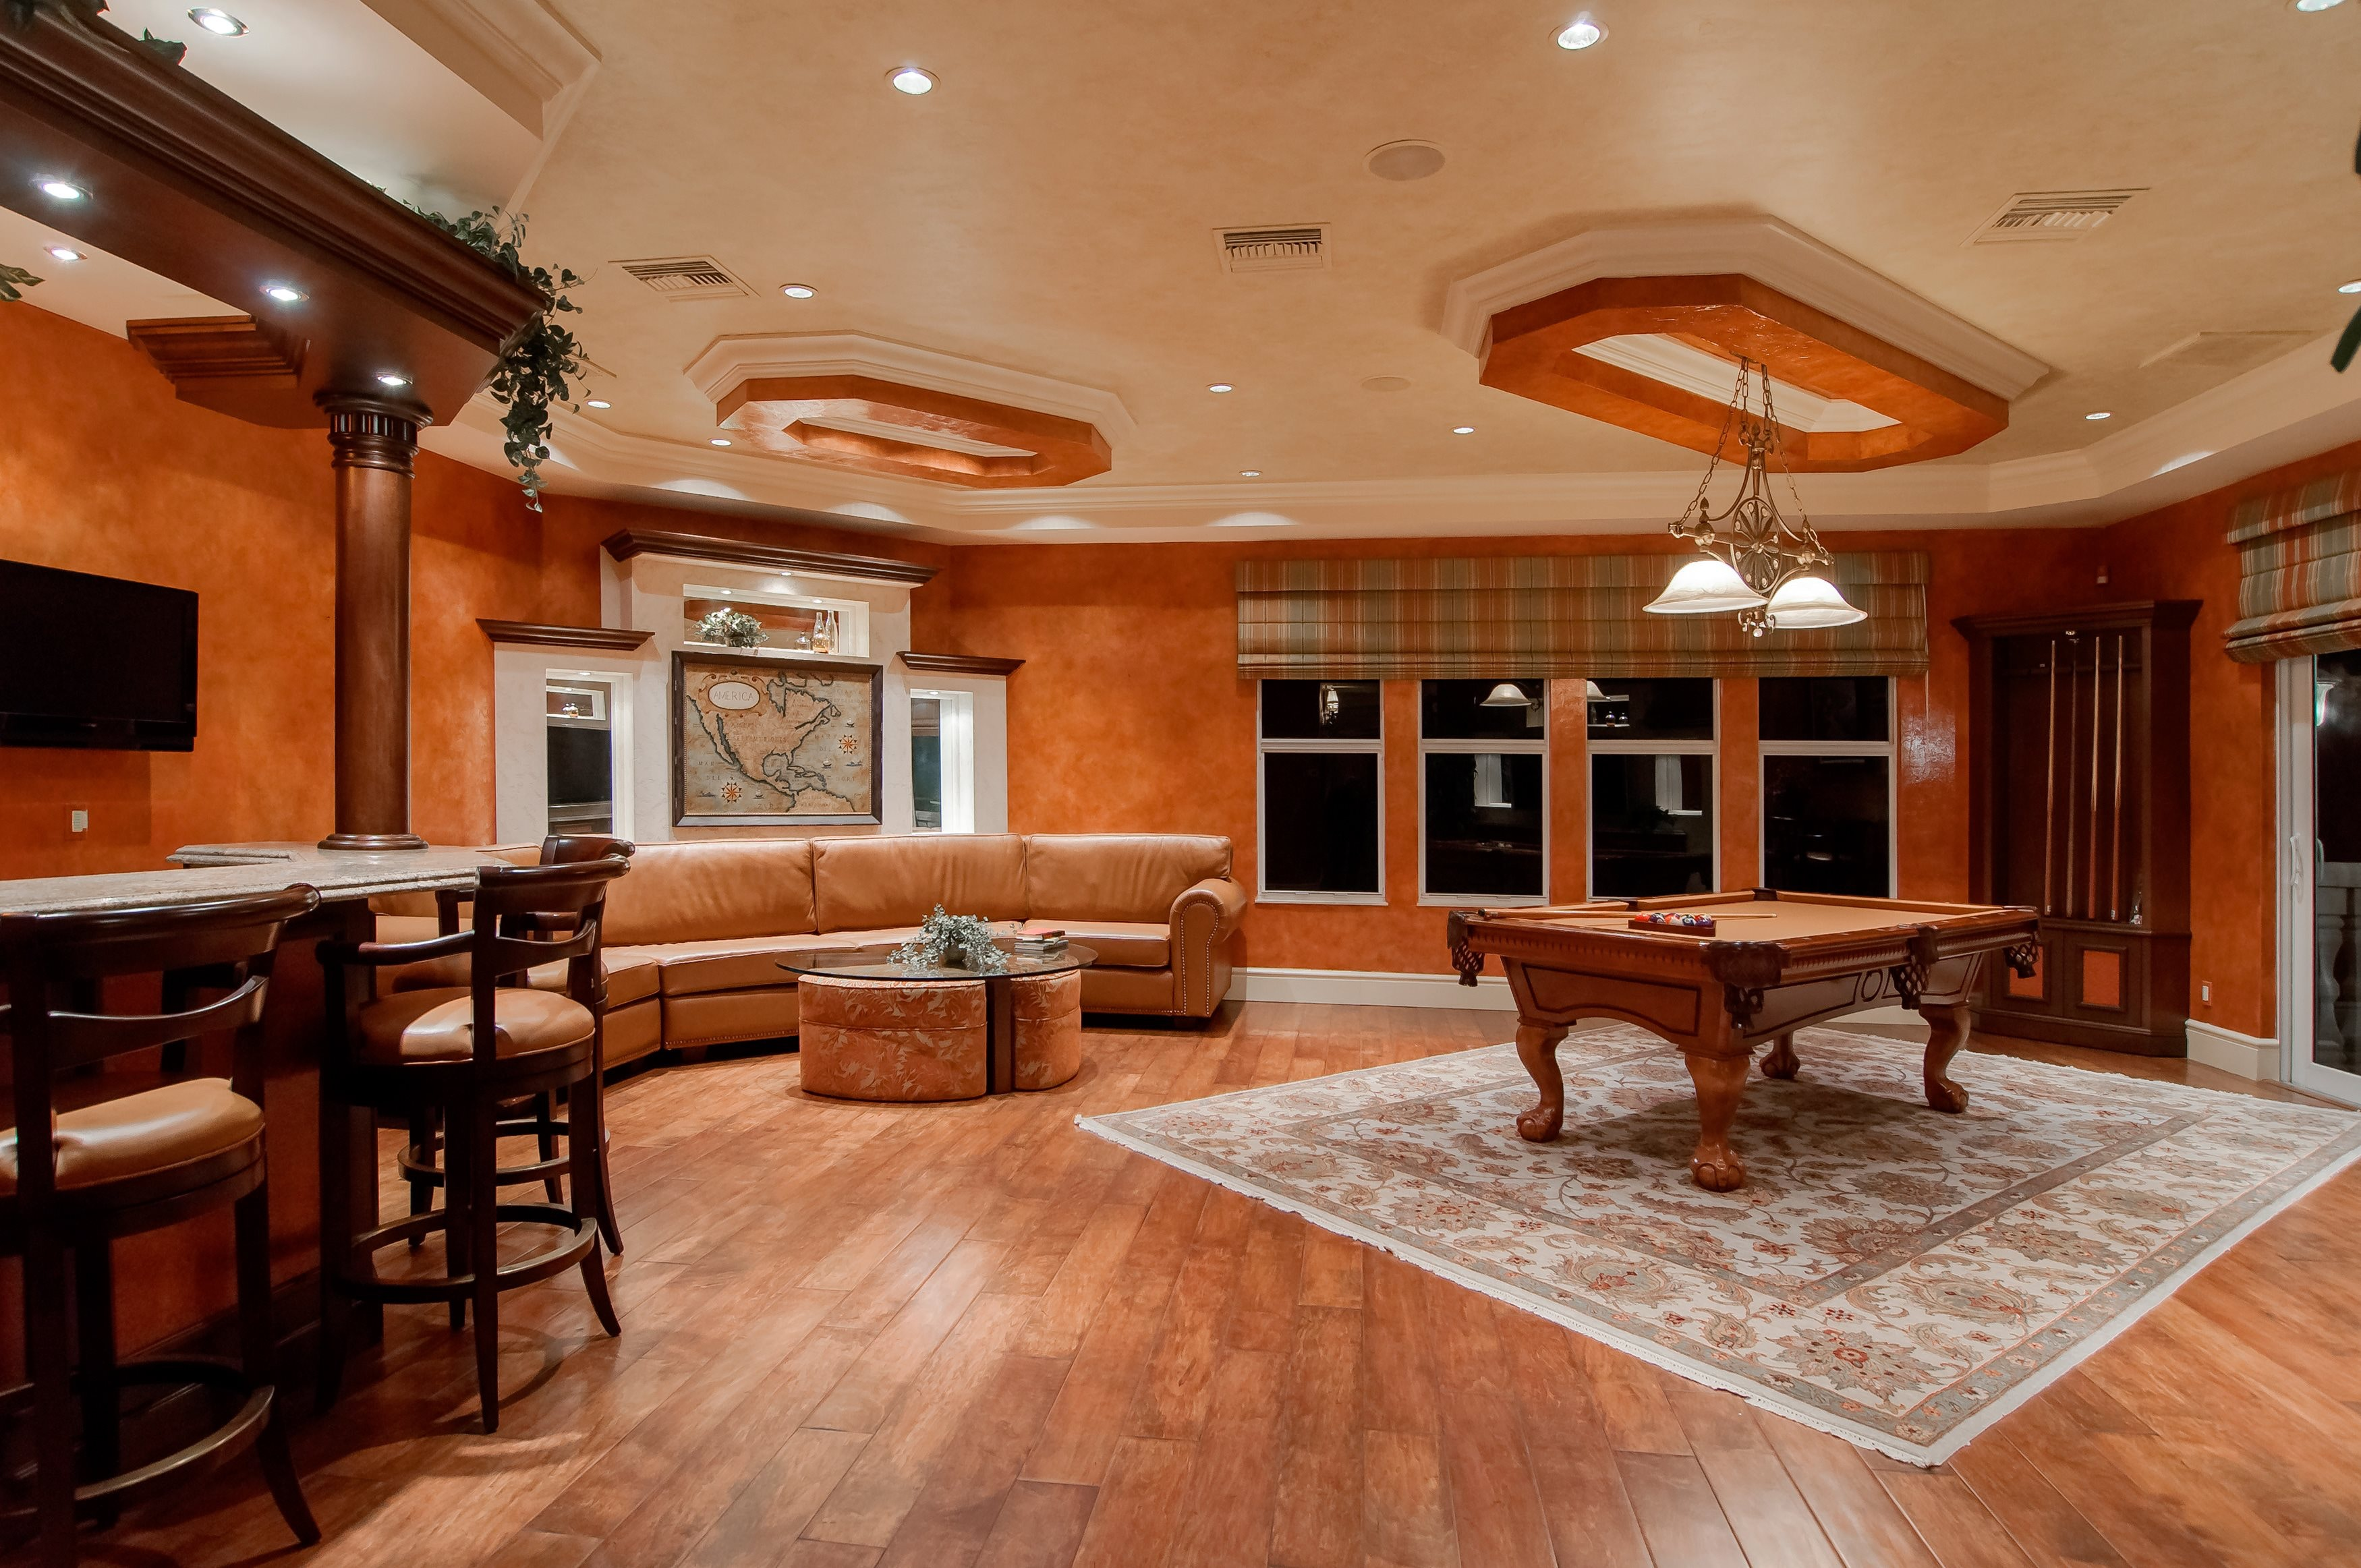 Indulgence in Real Estate  - 2018's Newest Luxury Trend